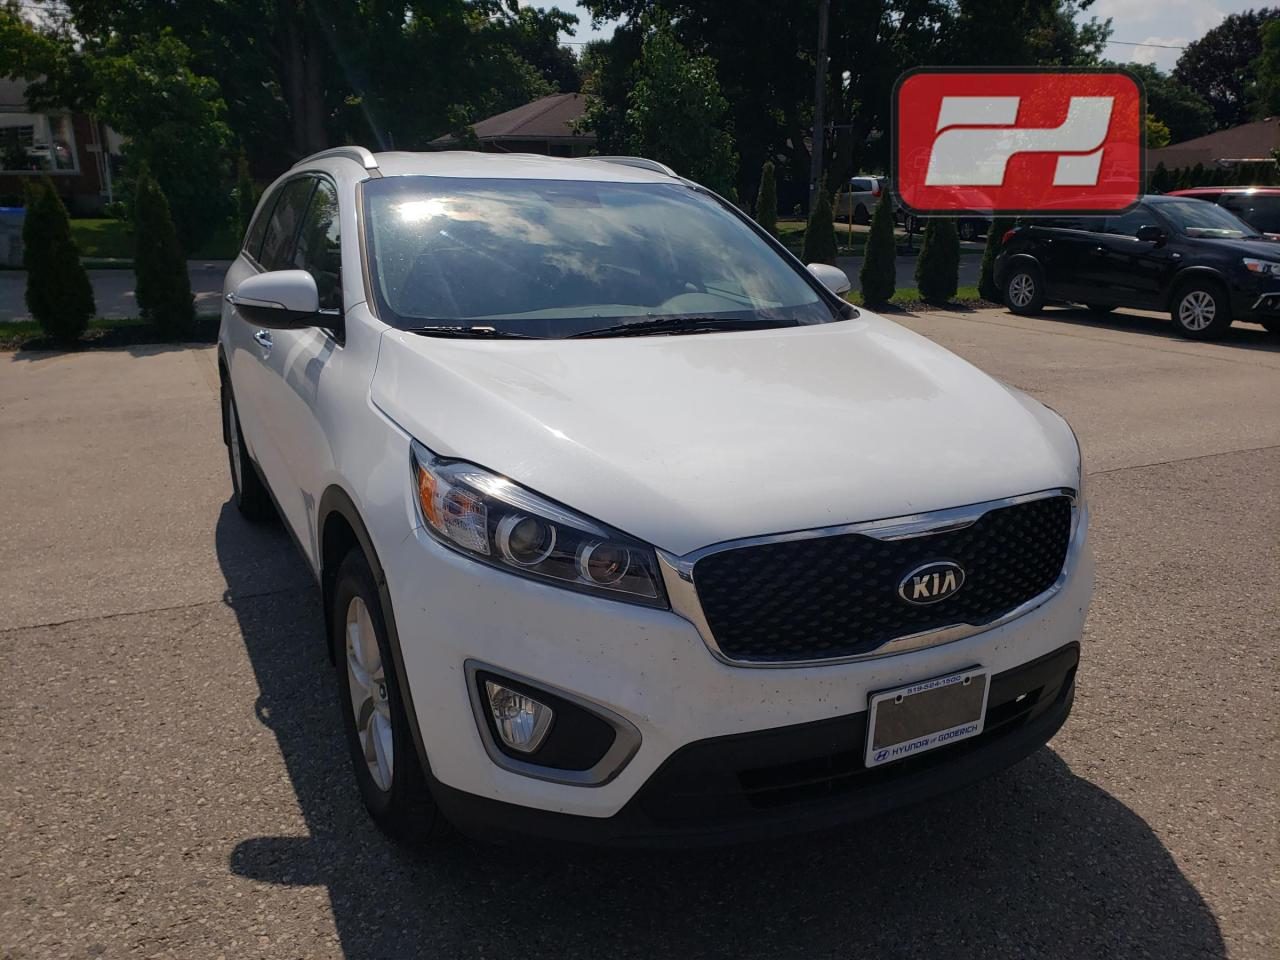 used 2016 kia sorento 2.4l lx bluetooth front fog lights snow tires rims for sale in stratford, ontario carpages.ca